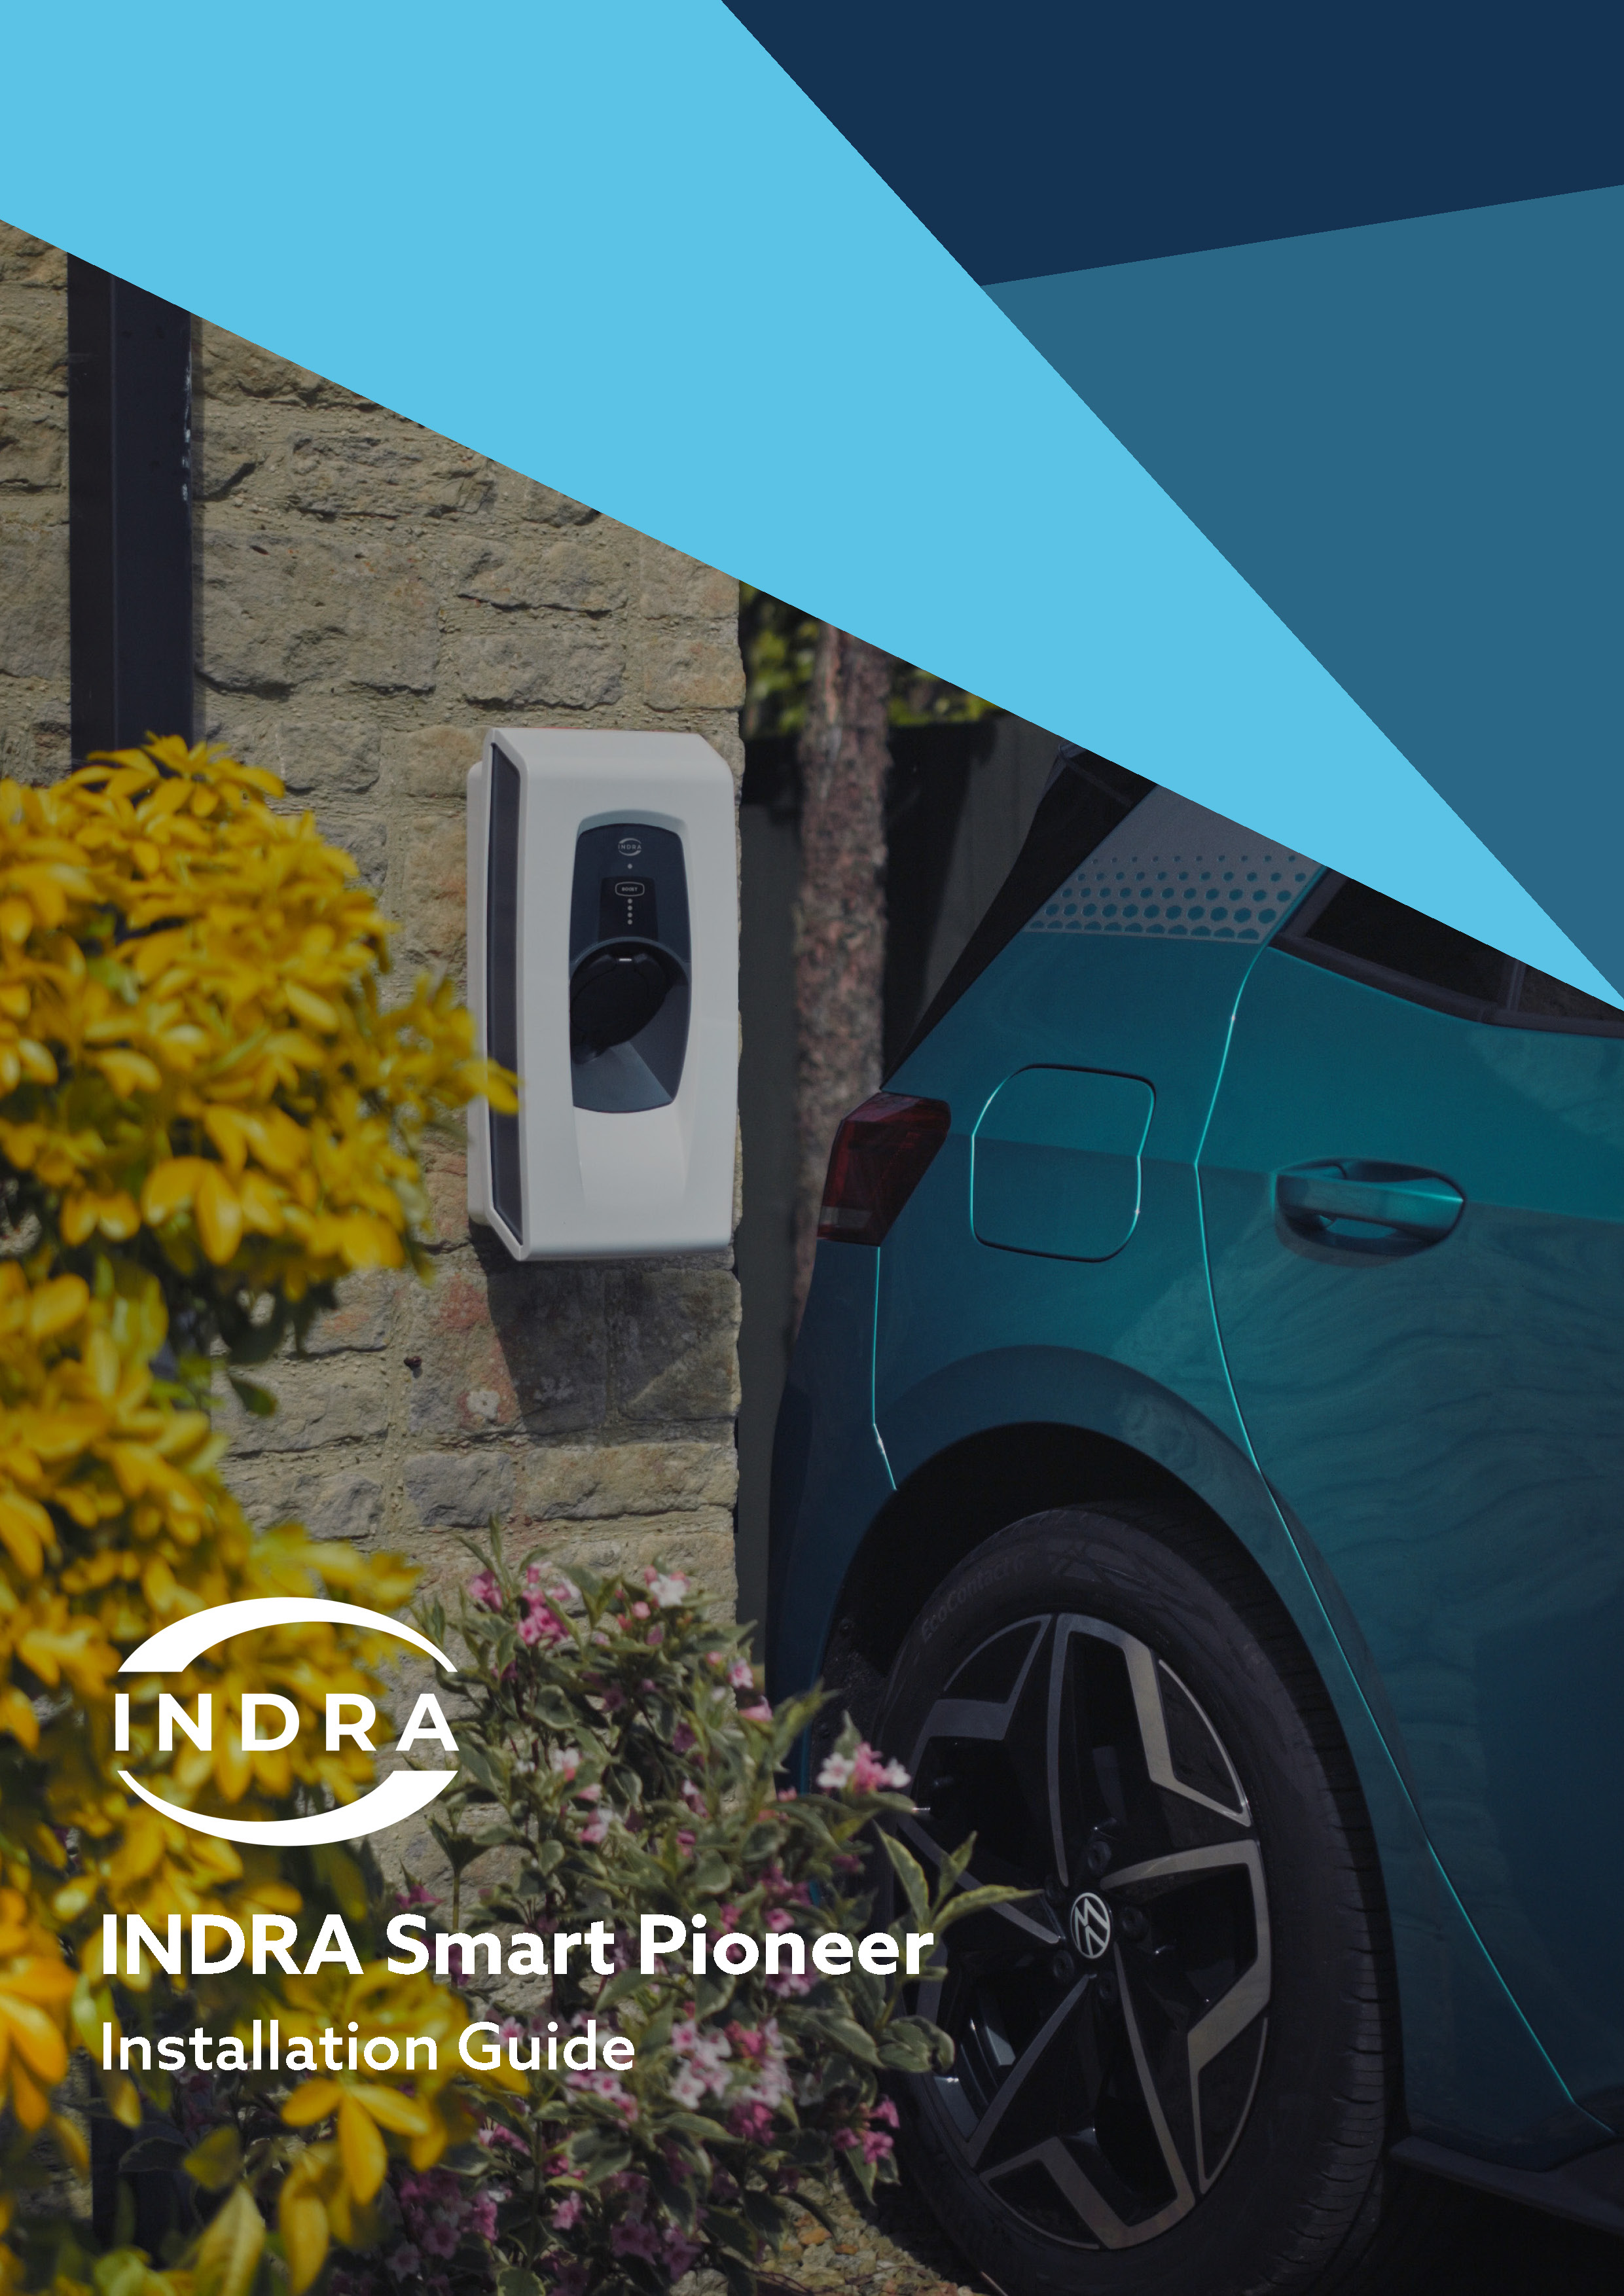 INDRA EV Charger- Smart Pioneer Installation Guide